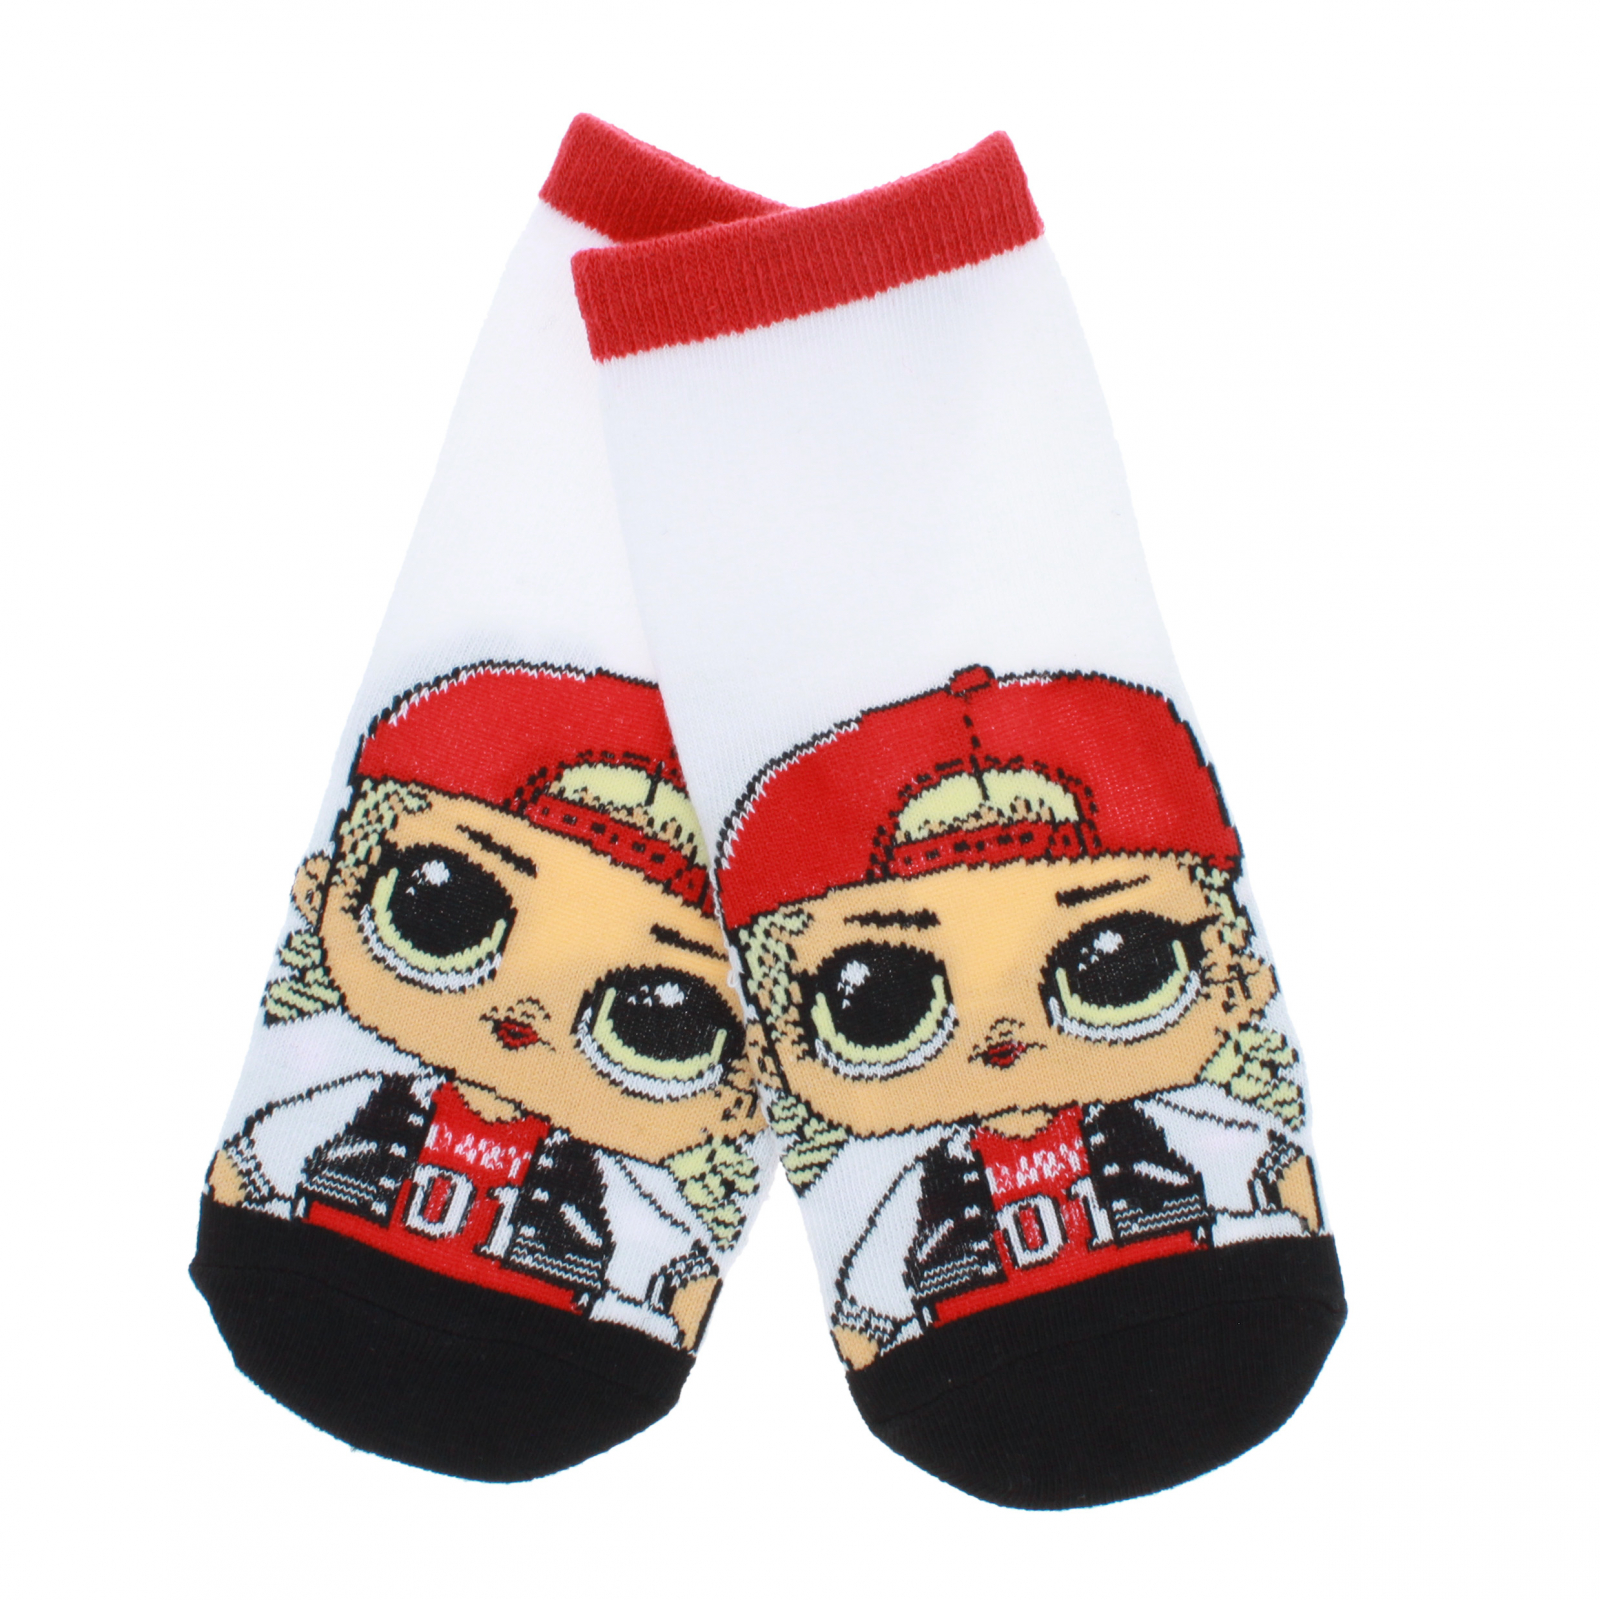 LOL Surprise Girls Ankle Socks Size 6-8.5 - Red